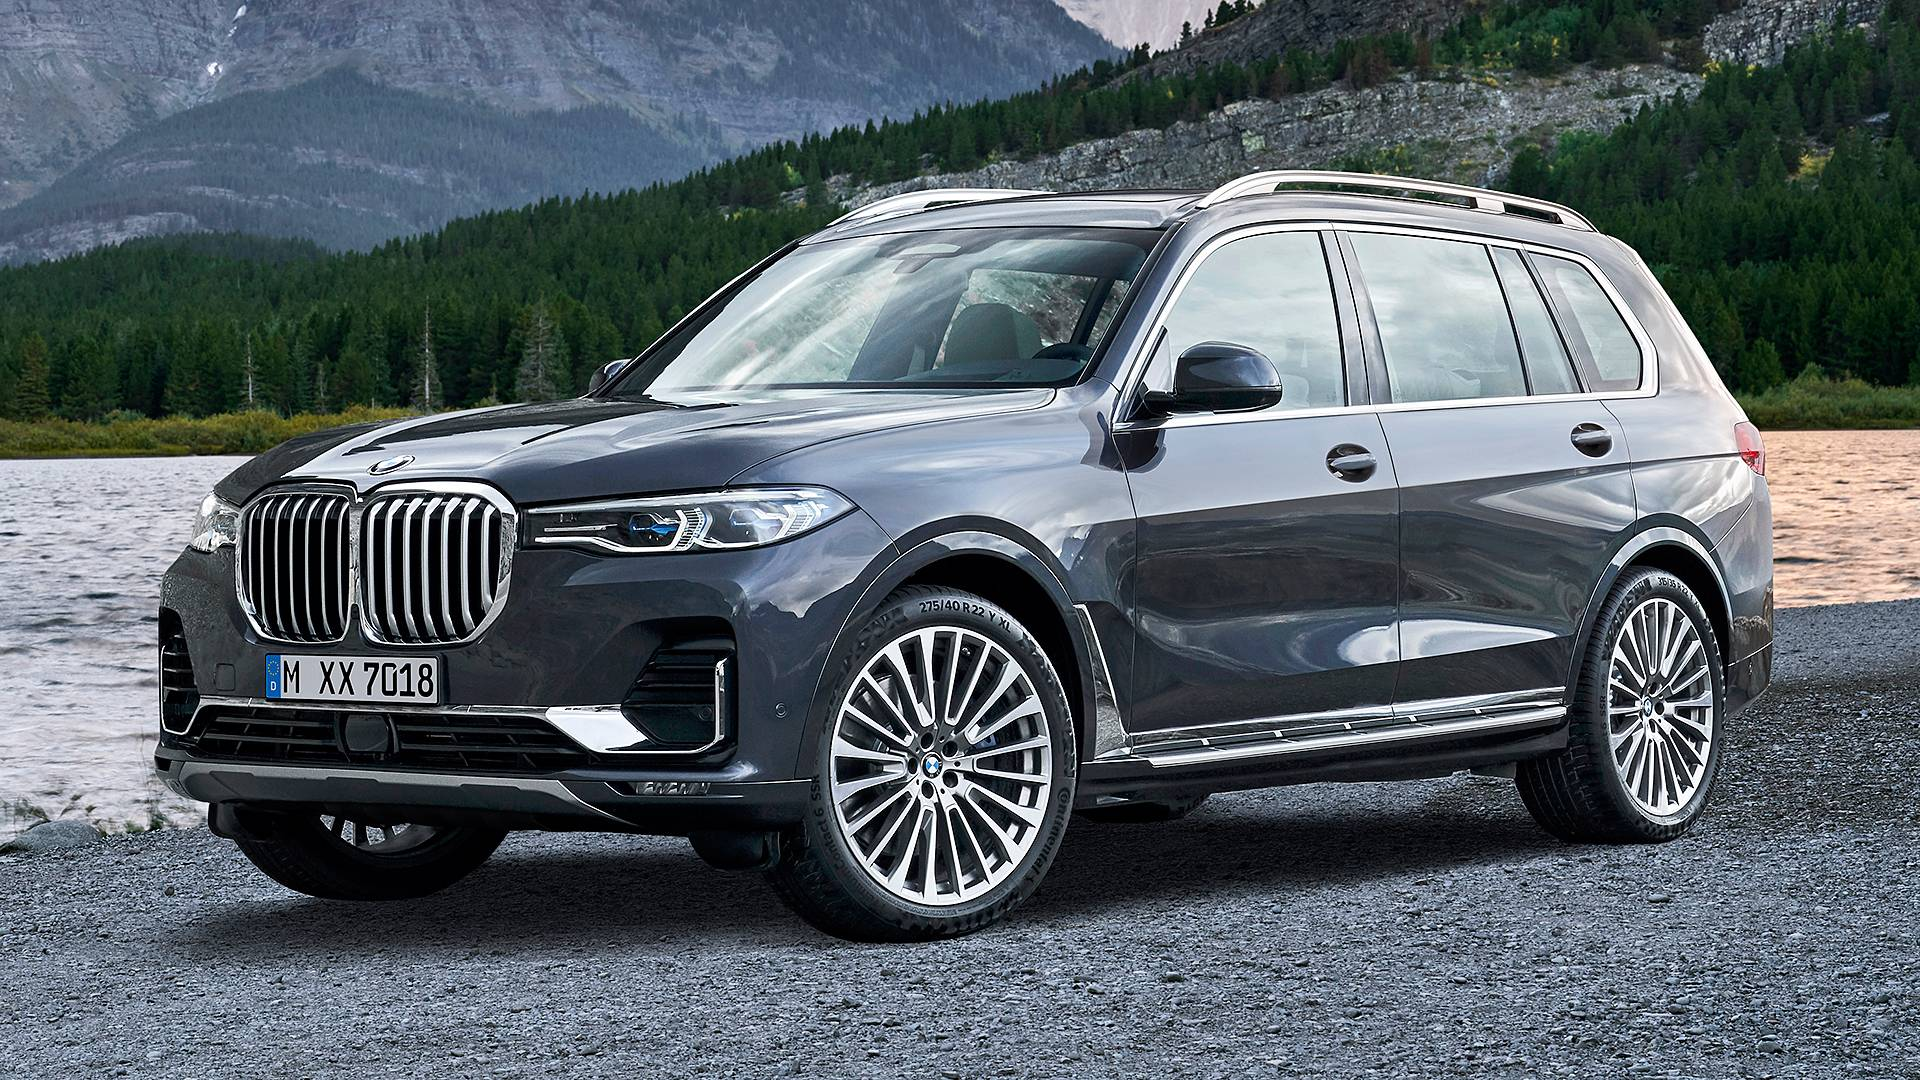 2020 BMW X7 Suv New Review